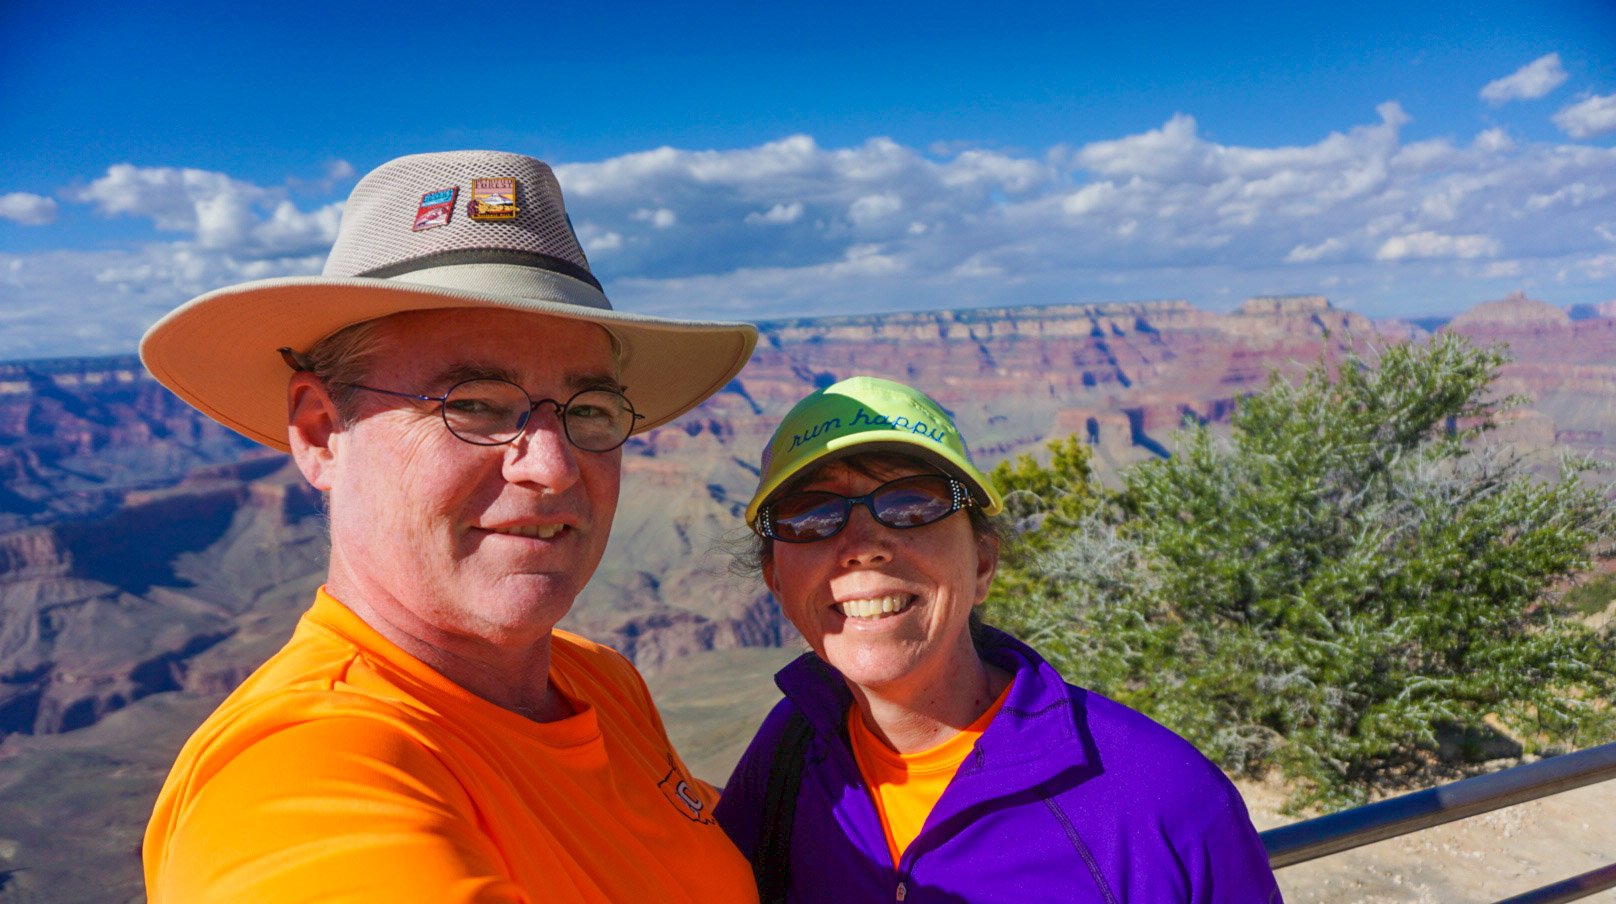 A selfie with Dawnie from the Grand Canyon south rim.